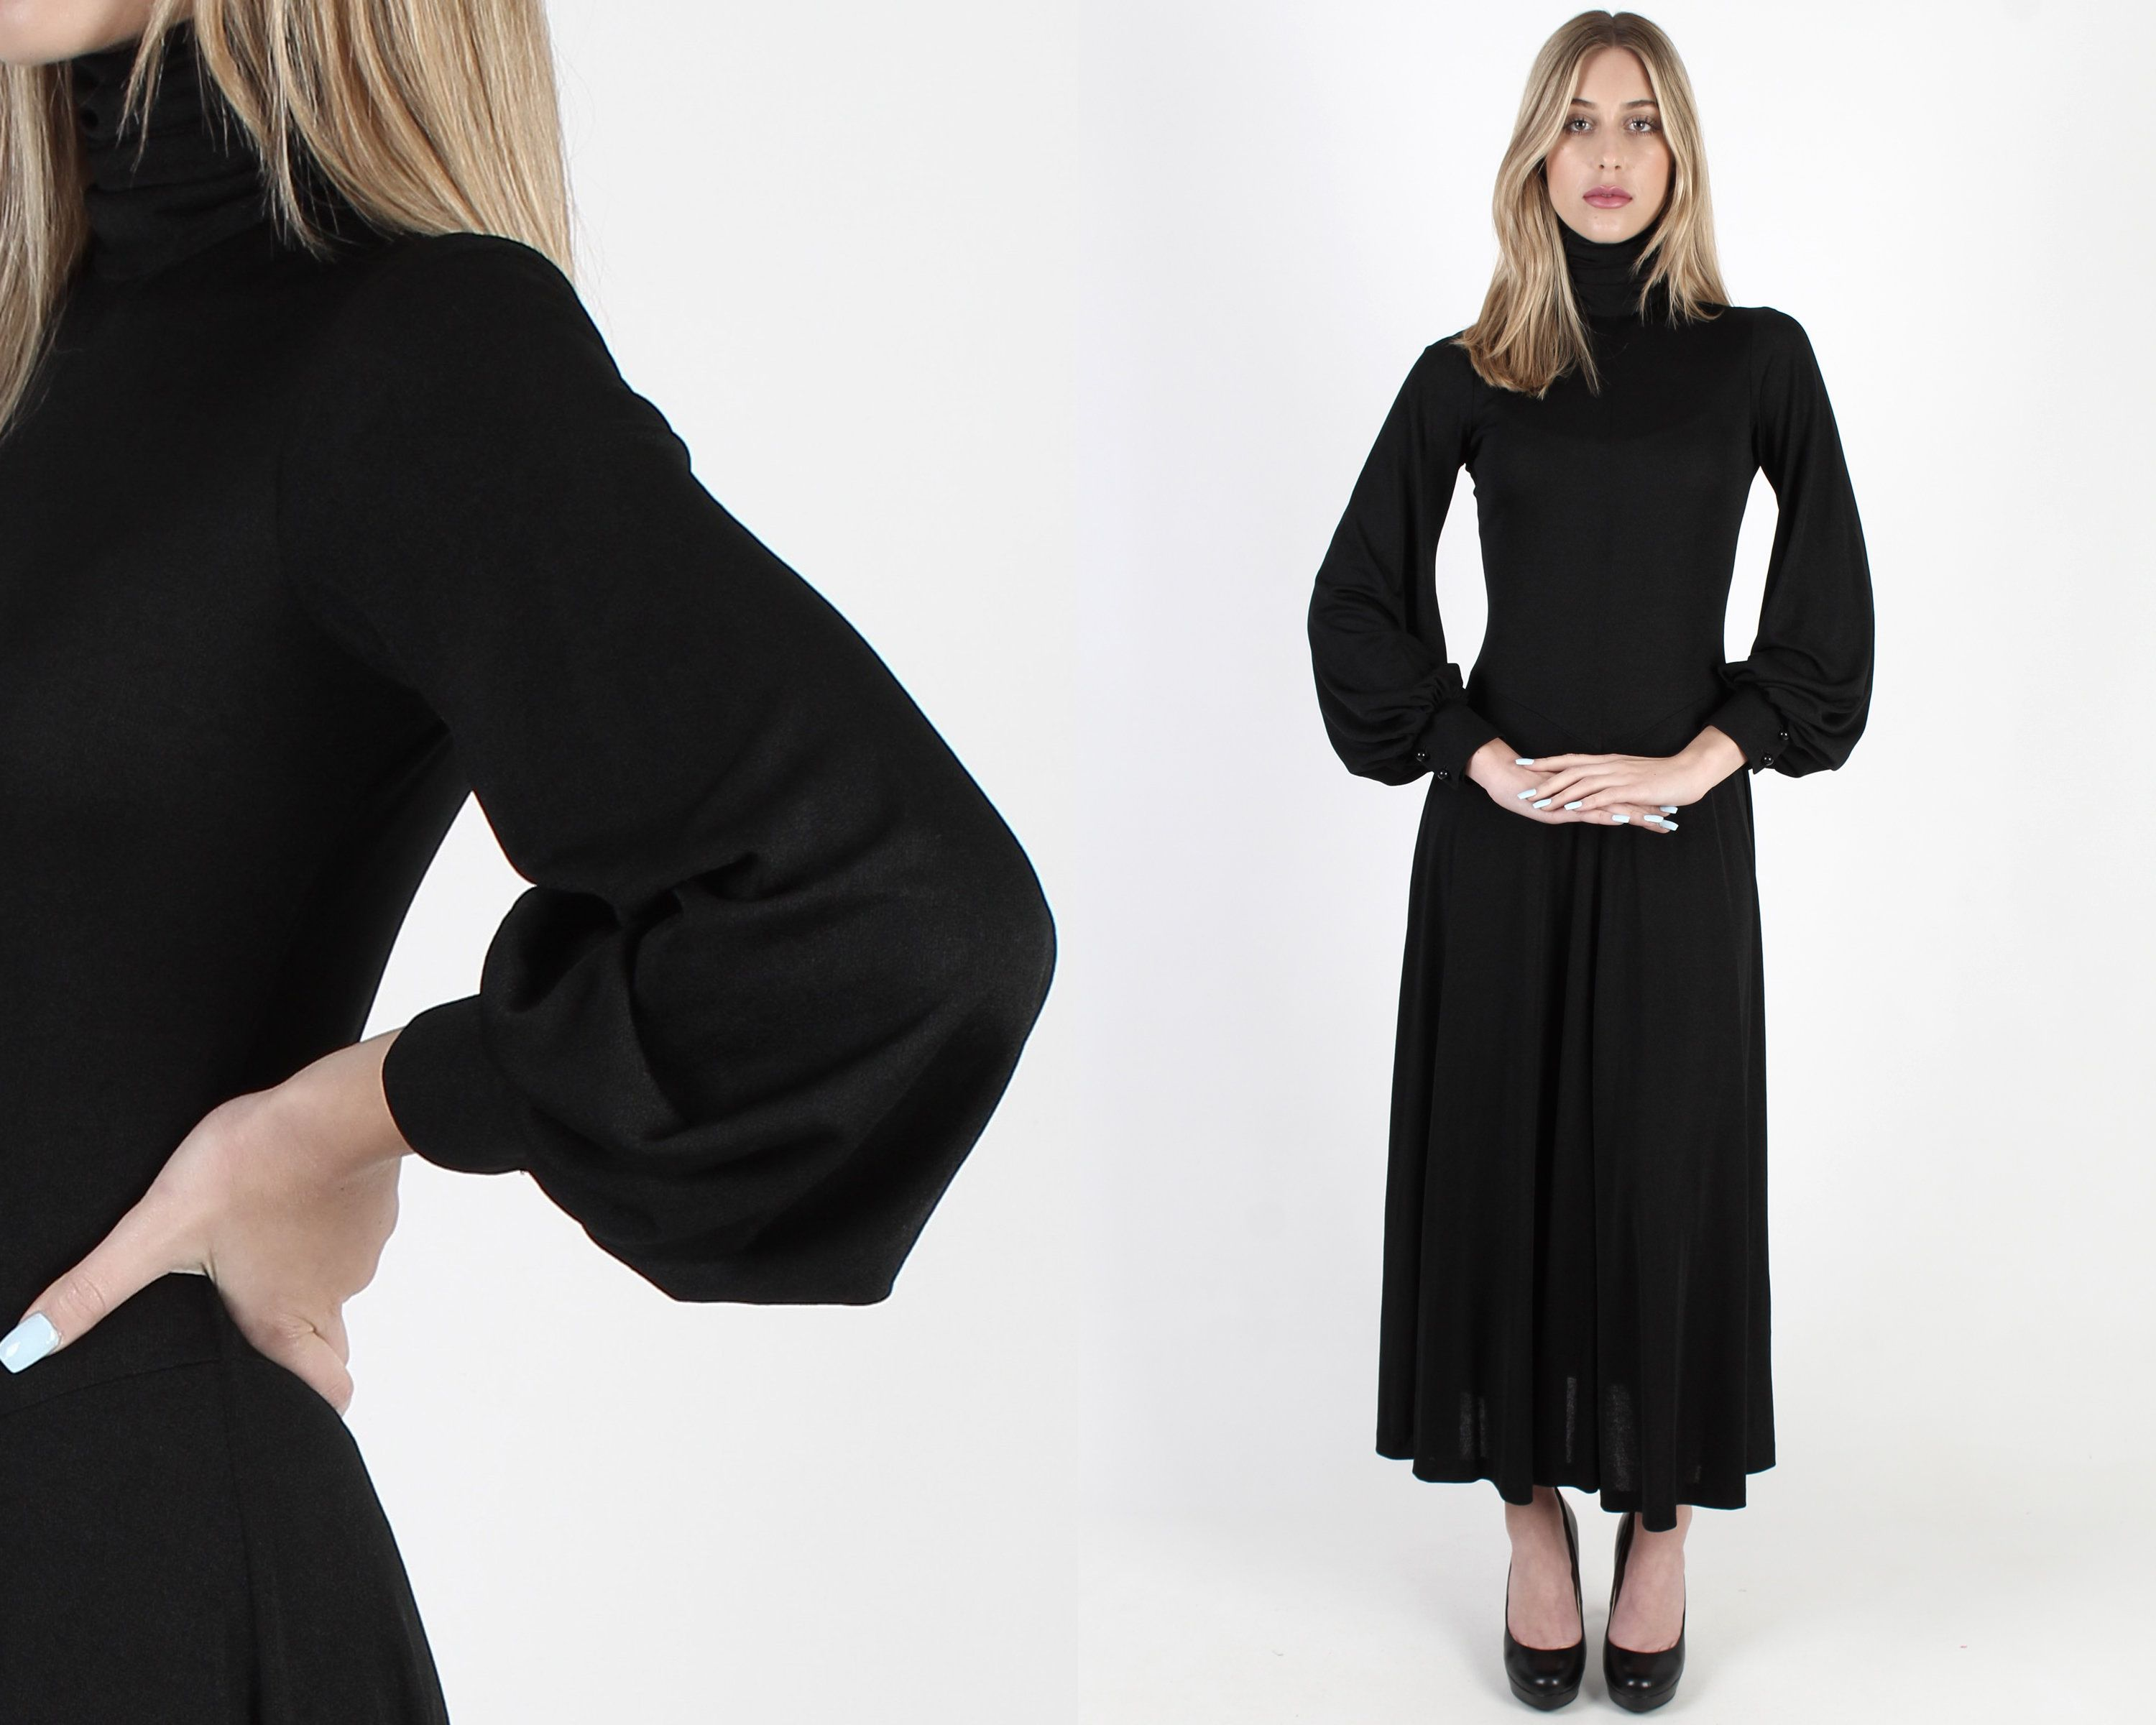 All Black High Neck Puff Sleeve Maxi Dress Vintage 70s Jersey Stretch Disco Dress Gothic Style Simple Goth Red Carpet Minimalist Long Dress Vintage Maxi Dress Maxi Dress With Sleeves Disco [ 2400 x 3000 Pixel ]